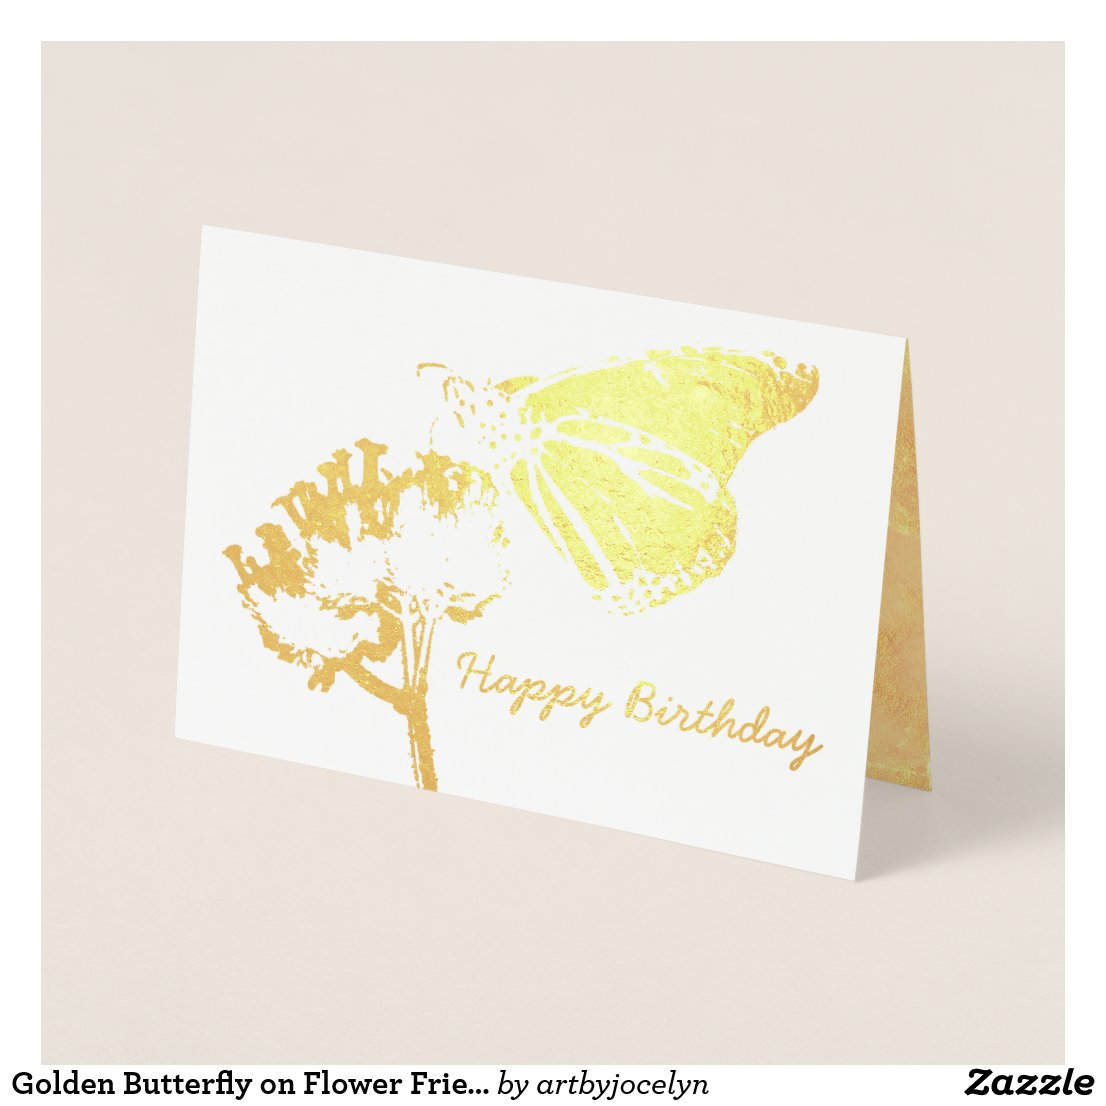 Golden Butterfly on Flower Friend Birthday Foil Card